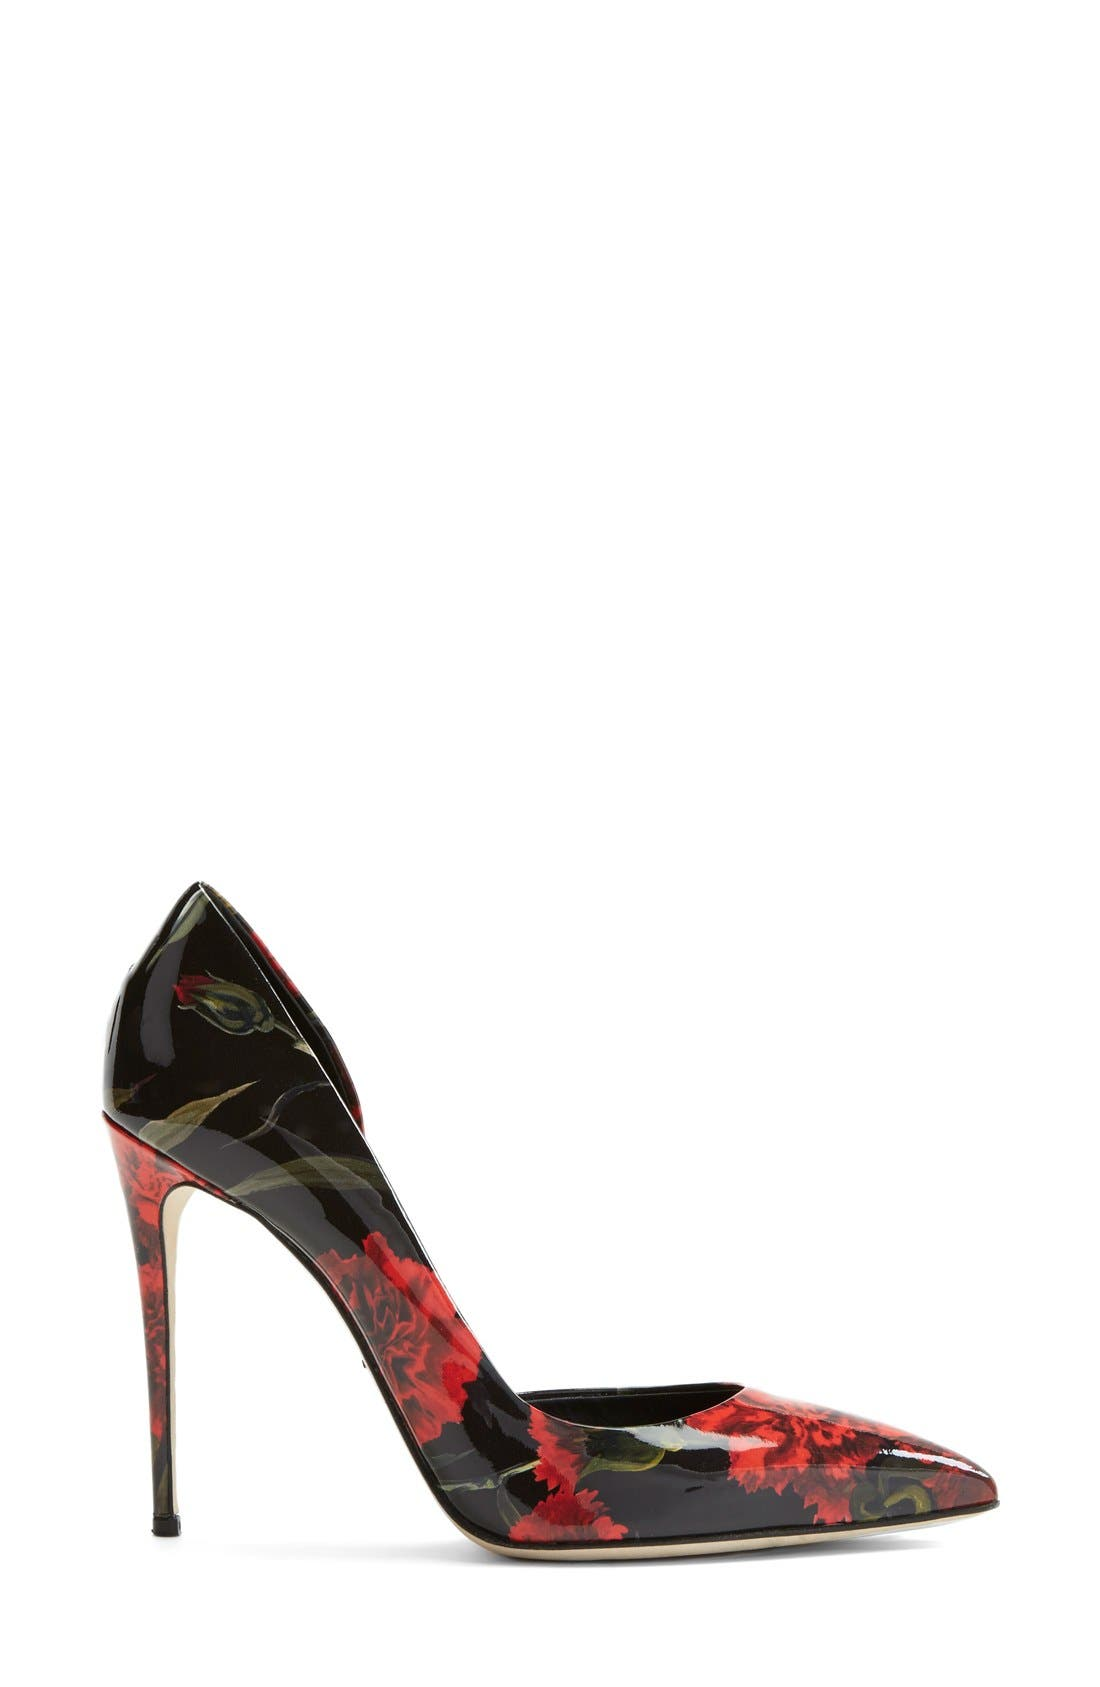 Alternate Image 4  - Dolce&Gabbana Floral Print Patent Leather Half d'Orsay Pump (Women)